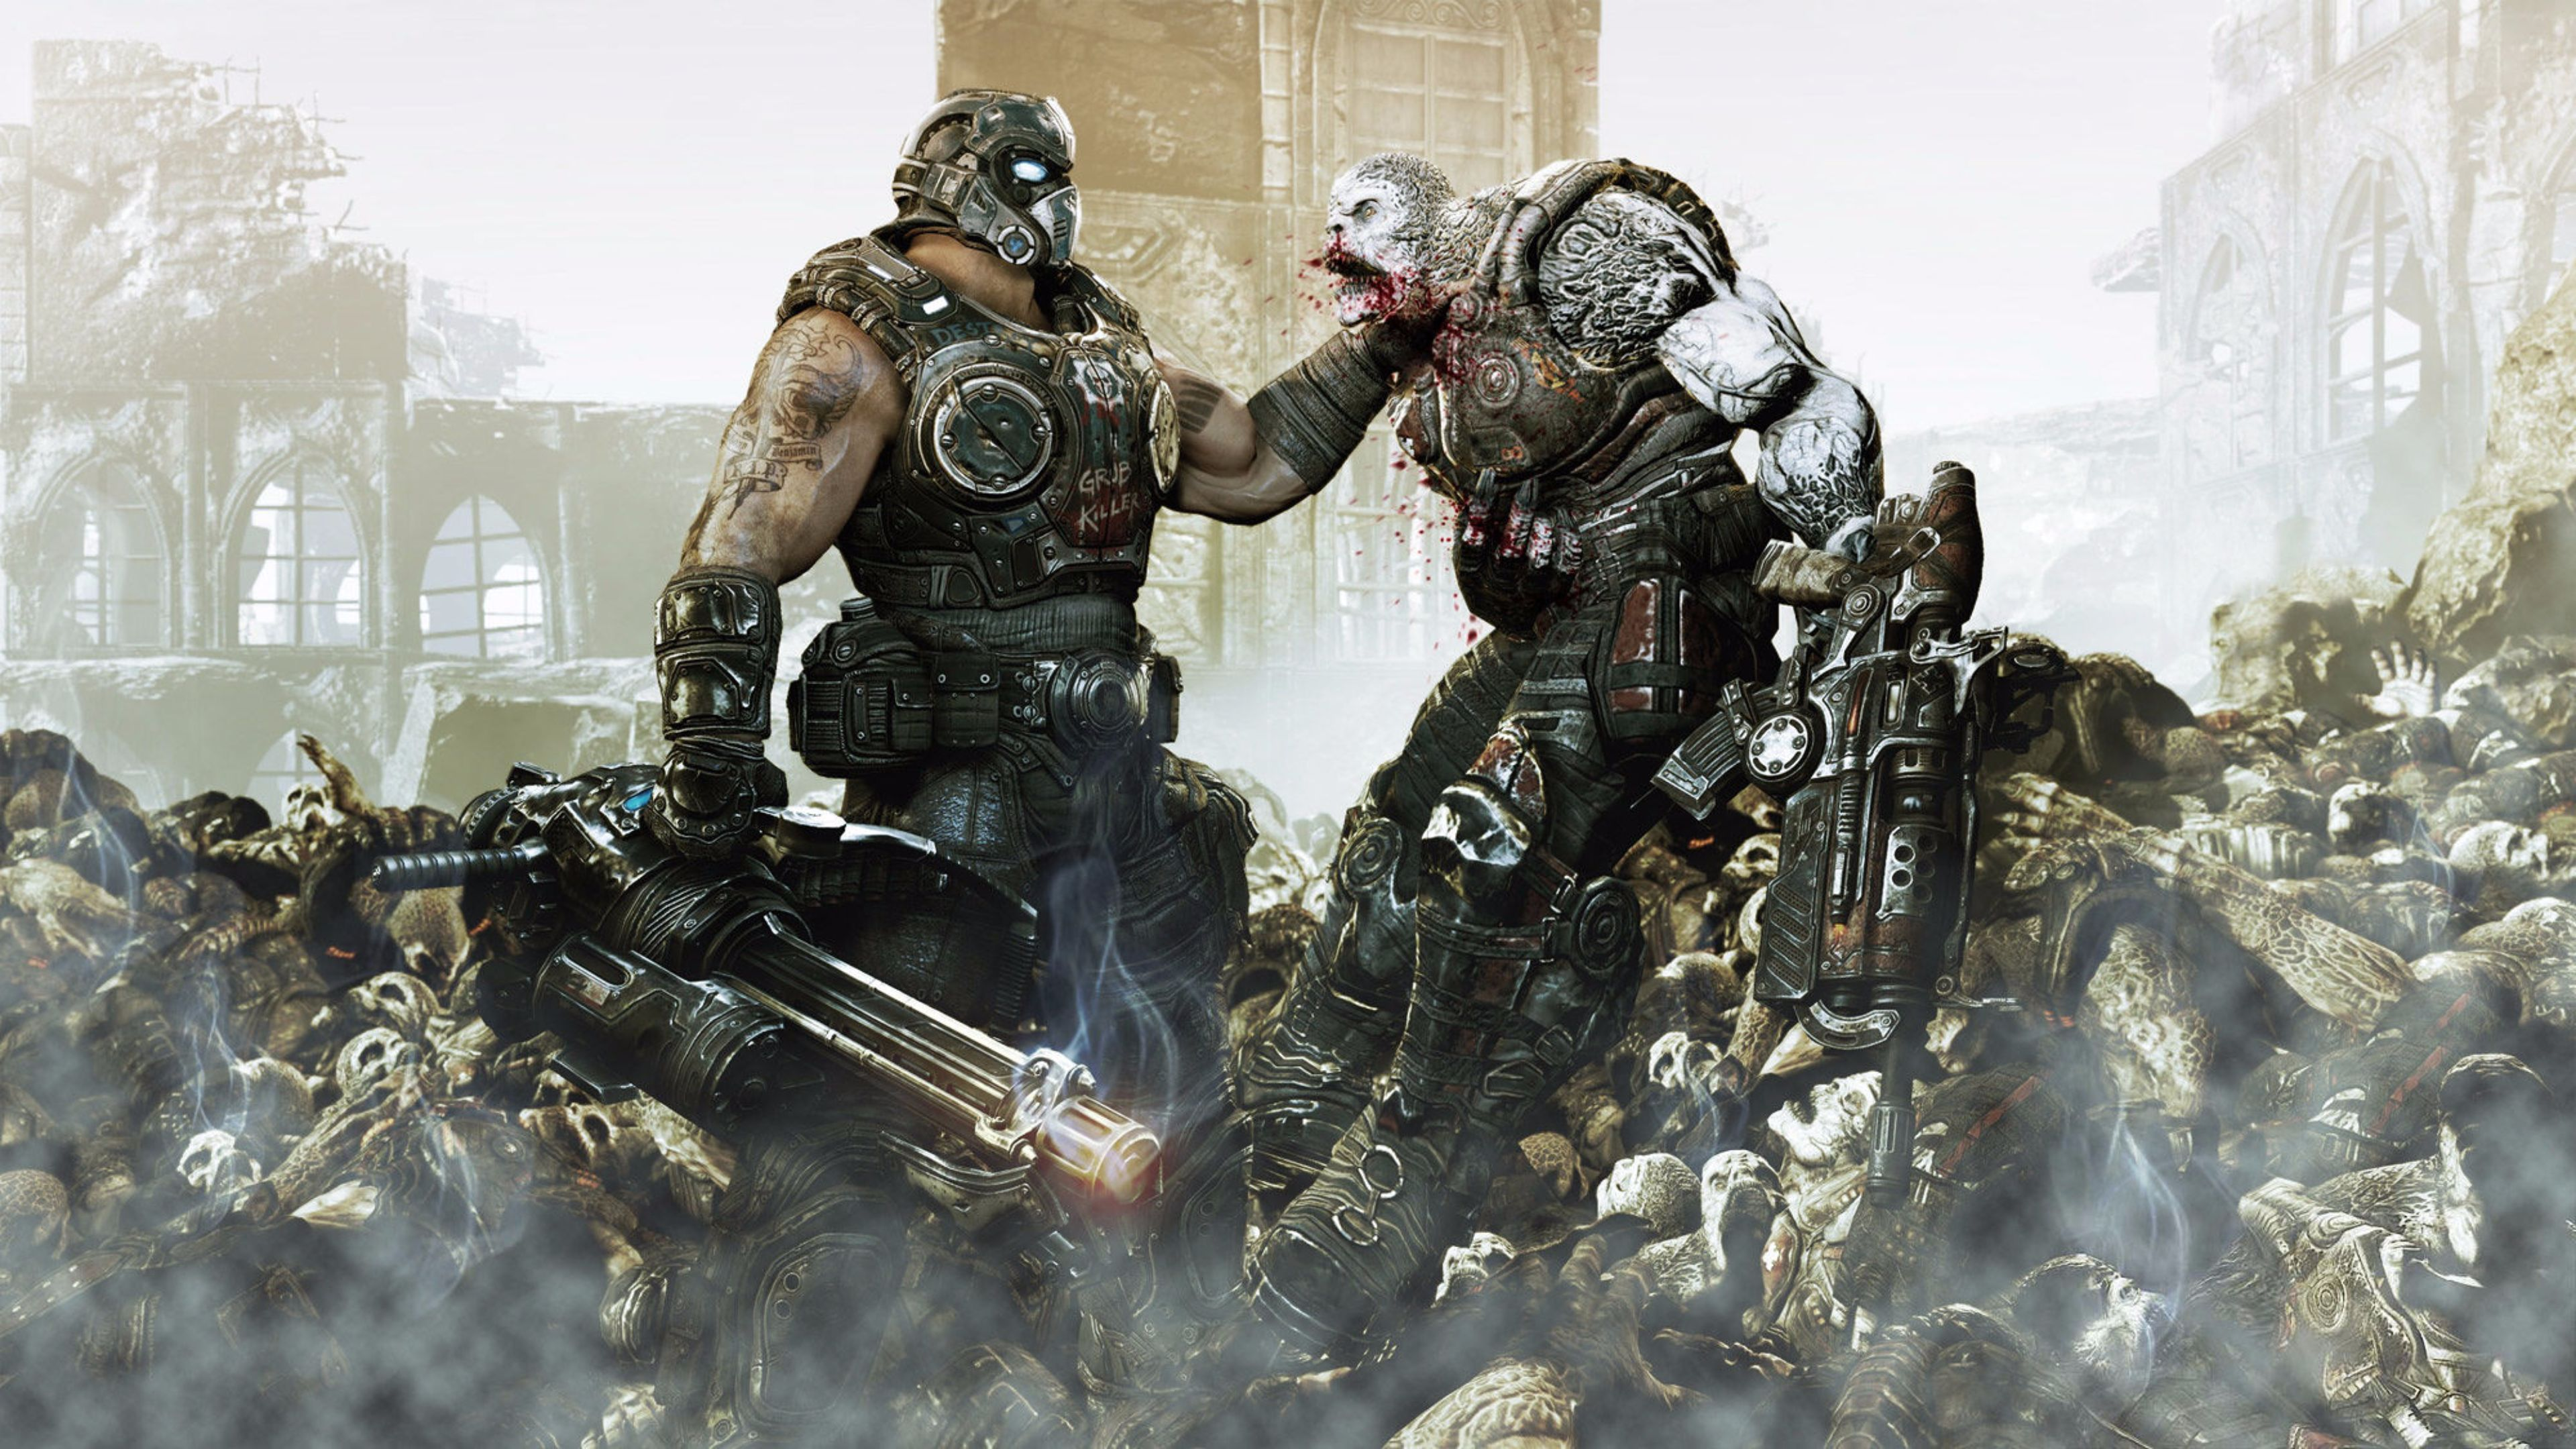 Gears Of War 4 Hd Wallpapers 7wallpapers Net